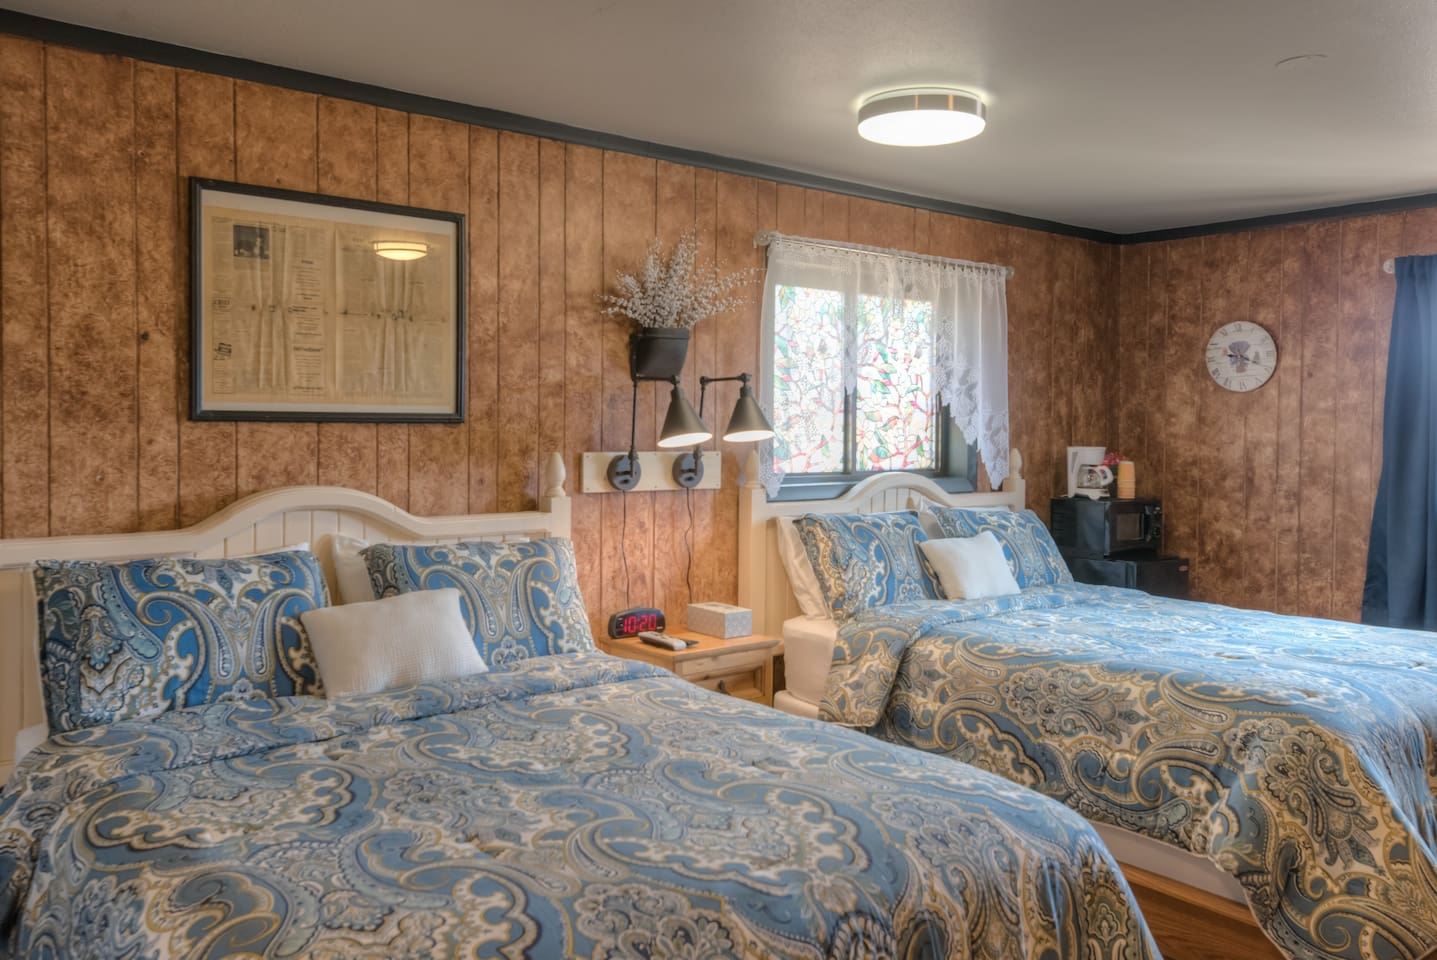 Cozy room with a gorgeous vintage flair